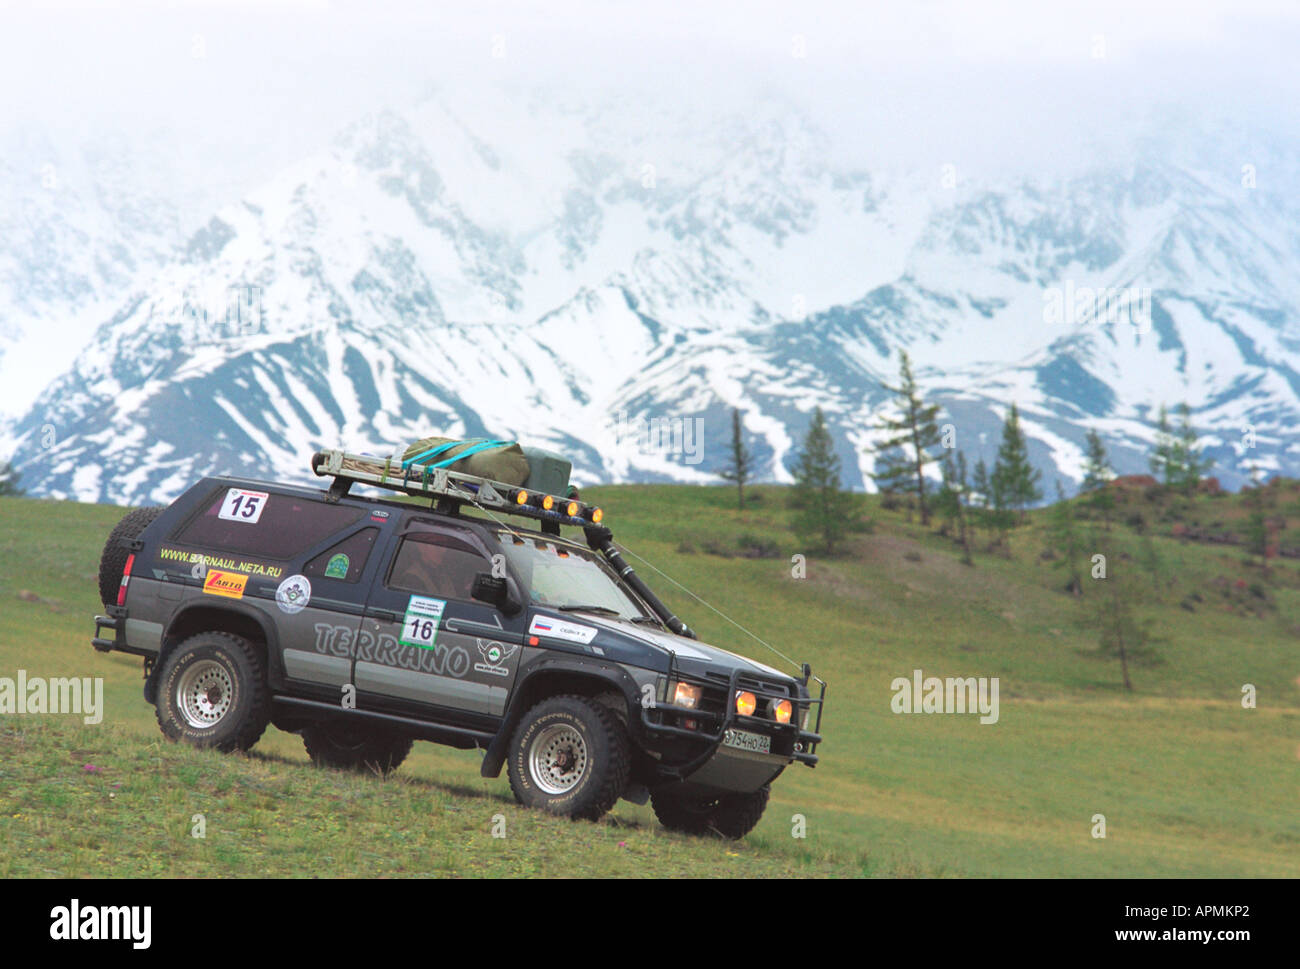 Nissan Terrano High Resolution Stock Photography And Images Alamy